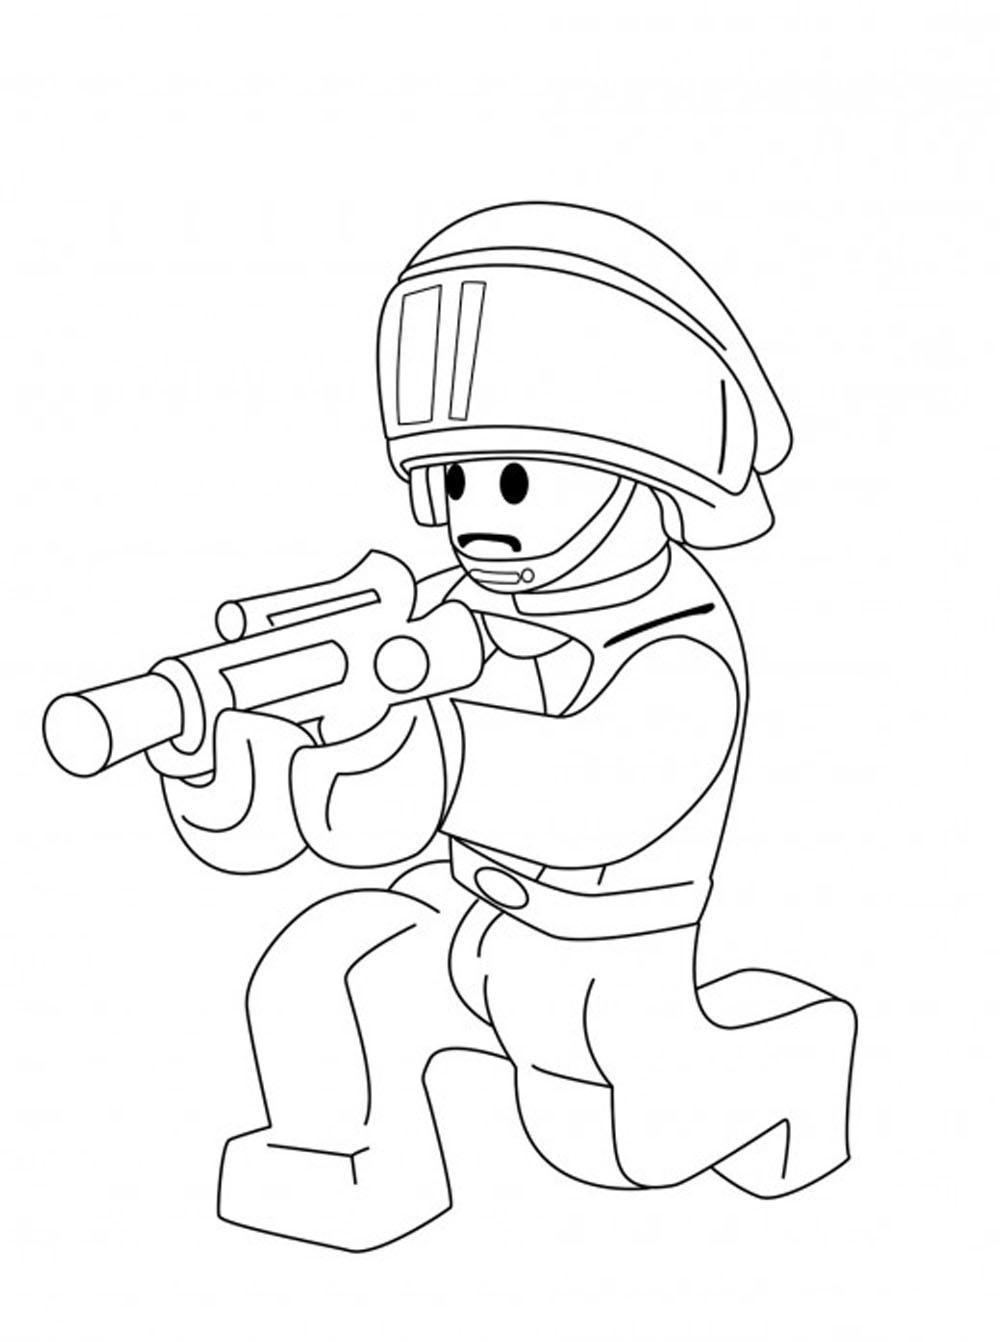 lego star wars colouring create your own lego coloring pages for kids colouring lego star wars